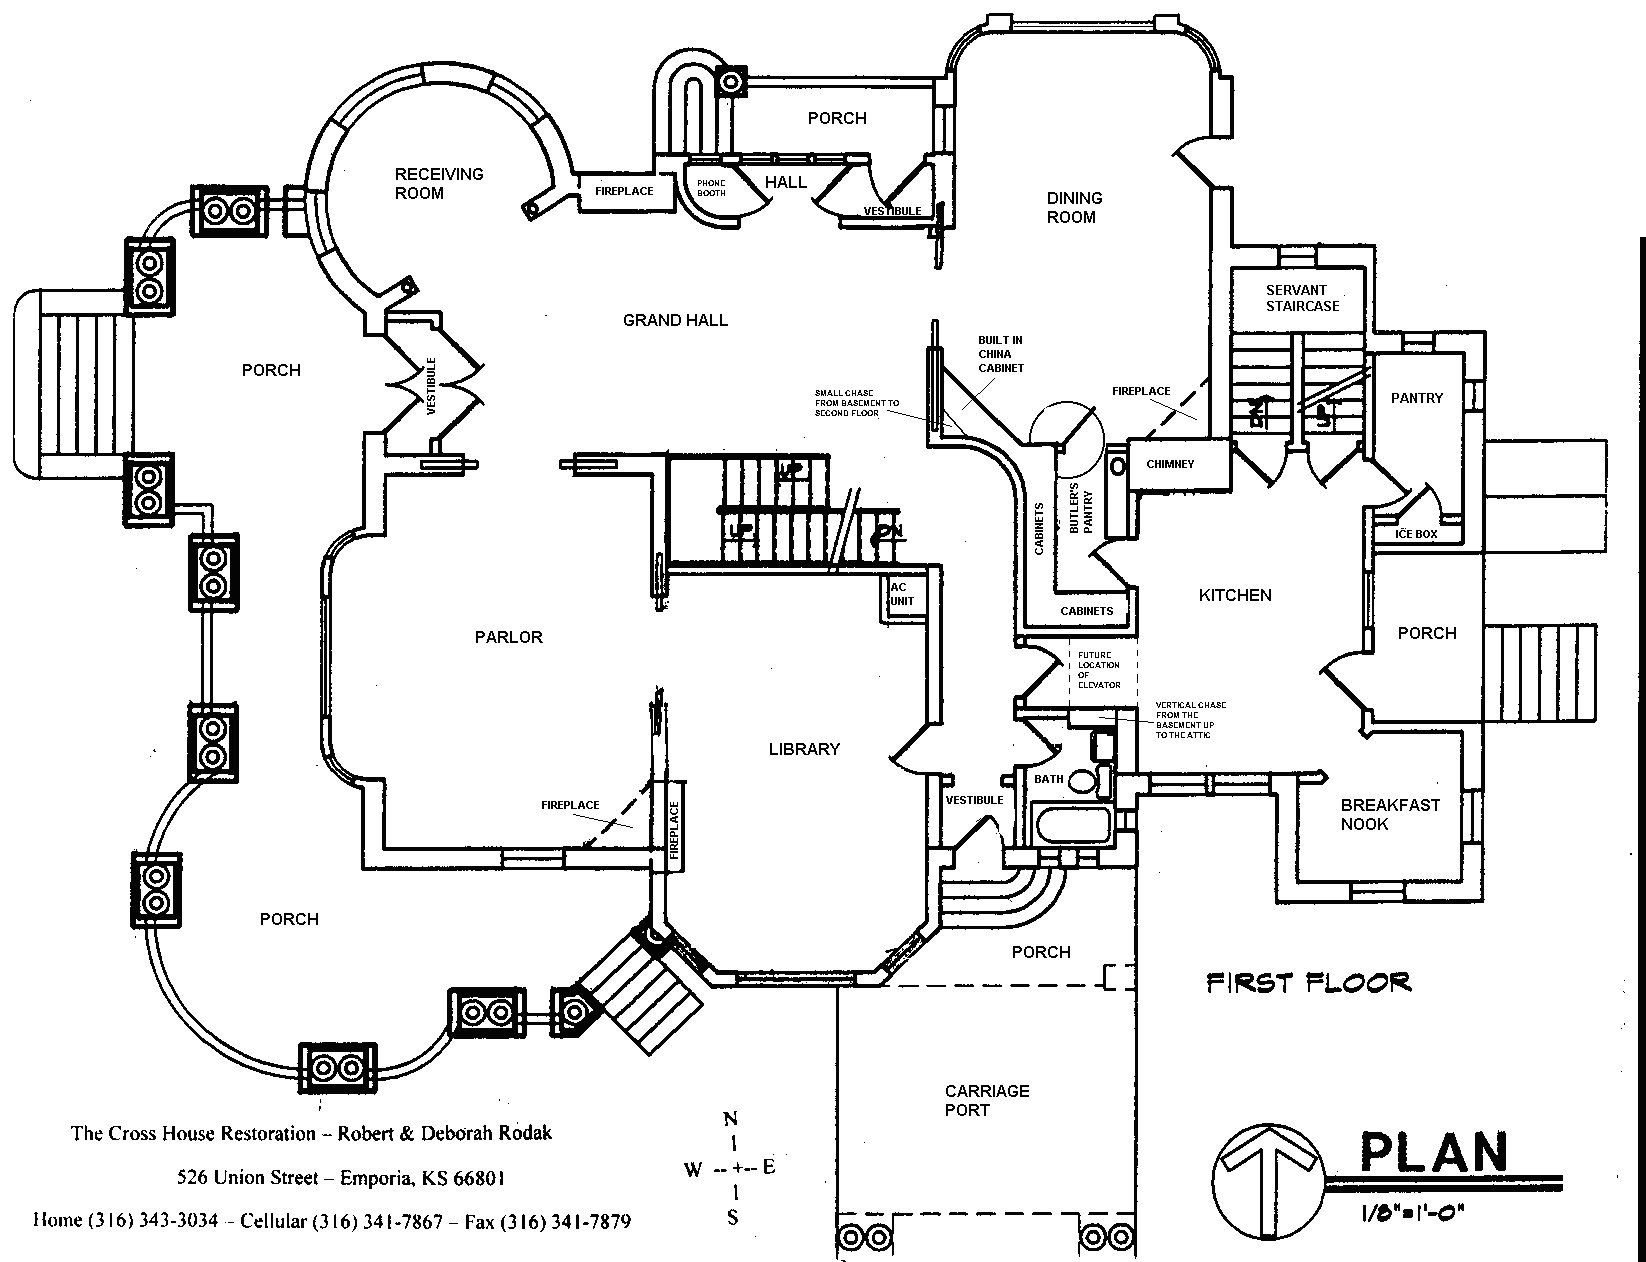 Cross house restoration floor plans and blueprints for Floor plan blueprint